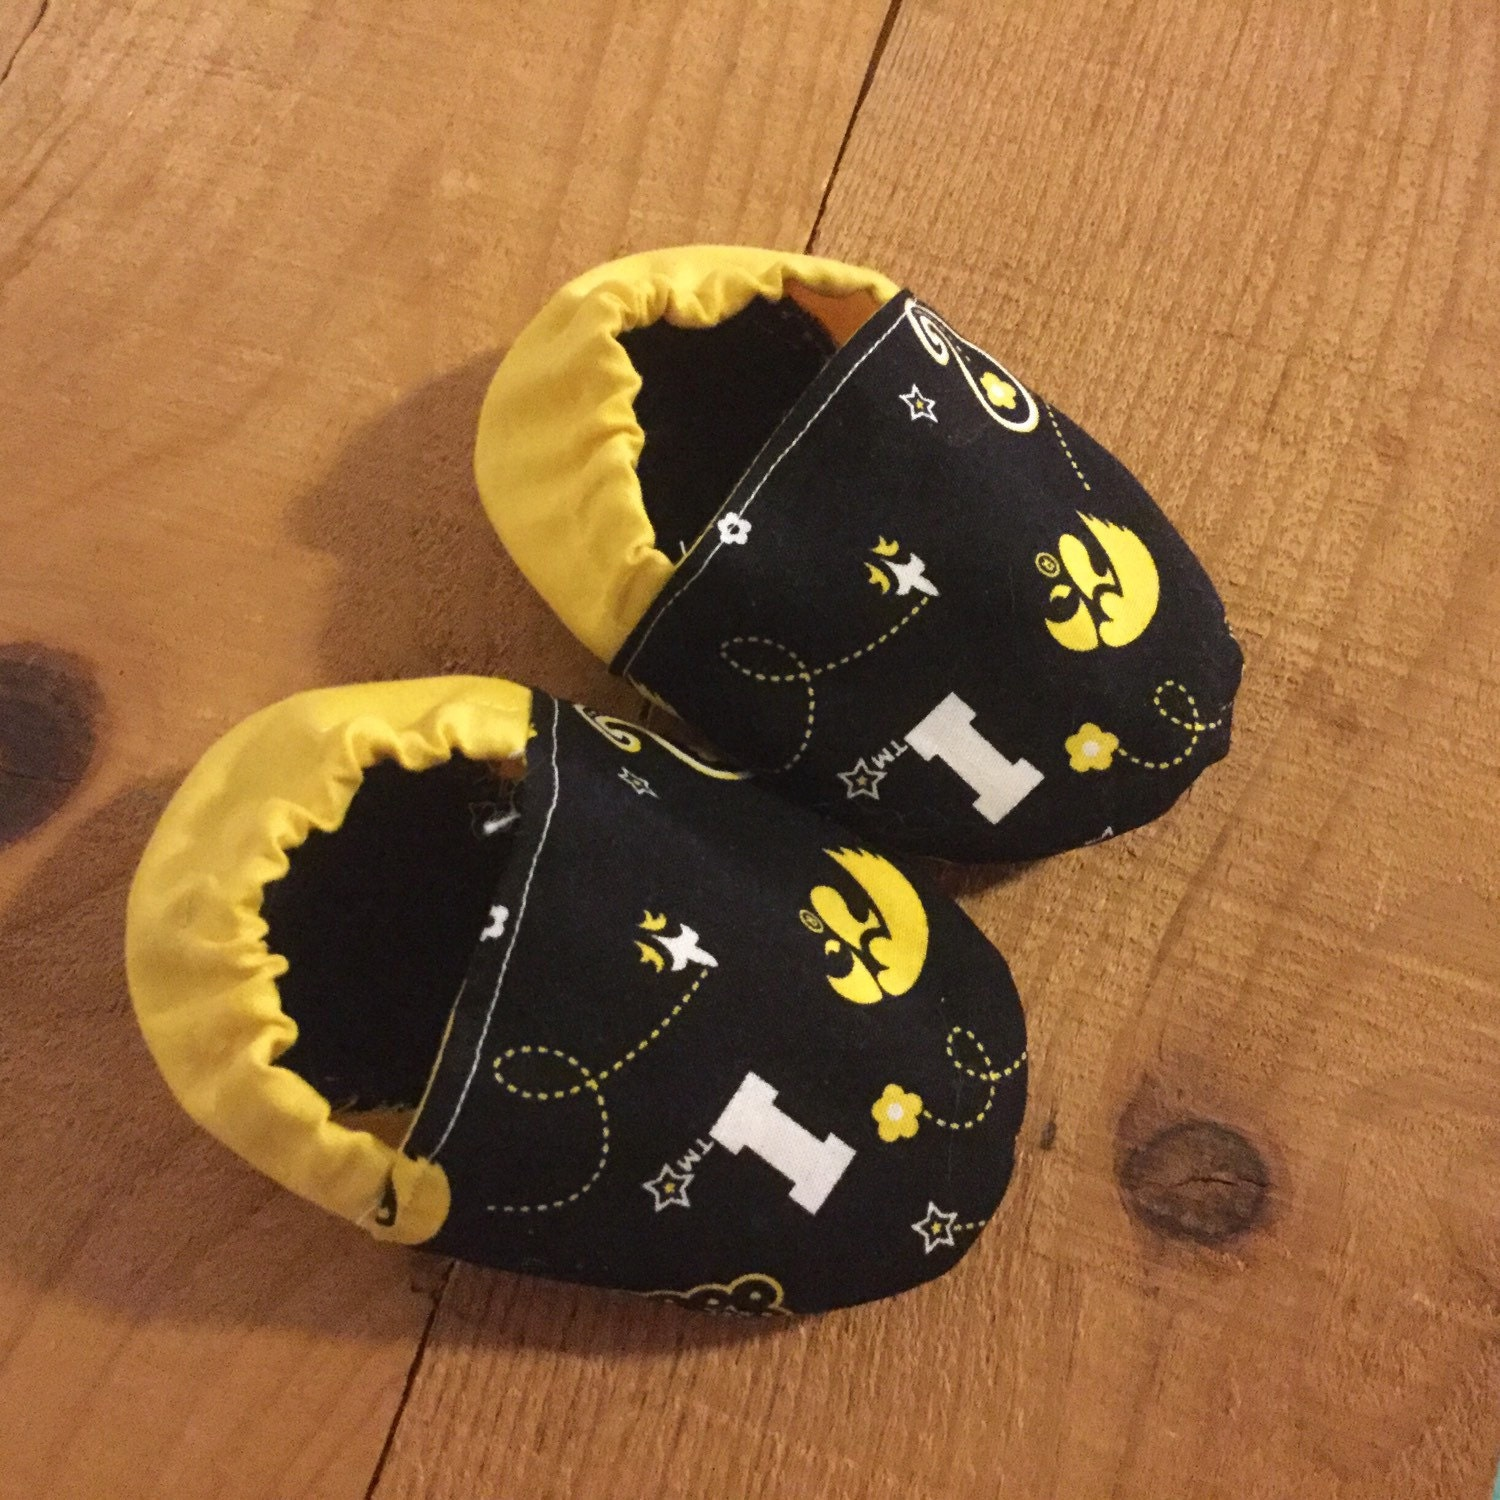 Iowa Hawkeye baby booties Hawkeye baby shoes Hawkeye baby